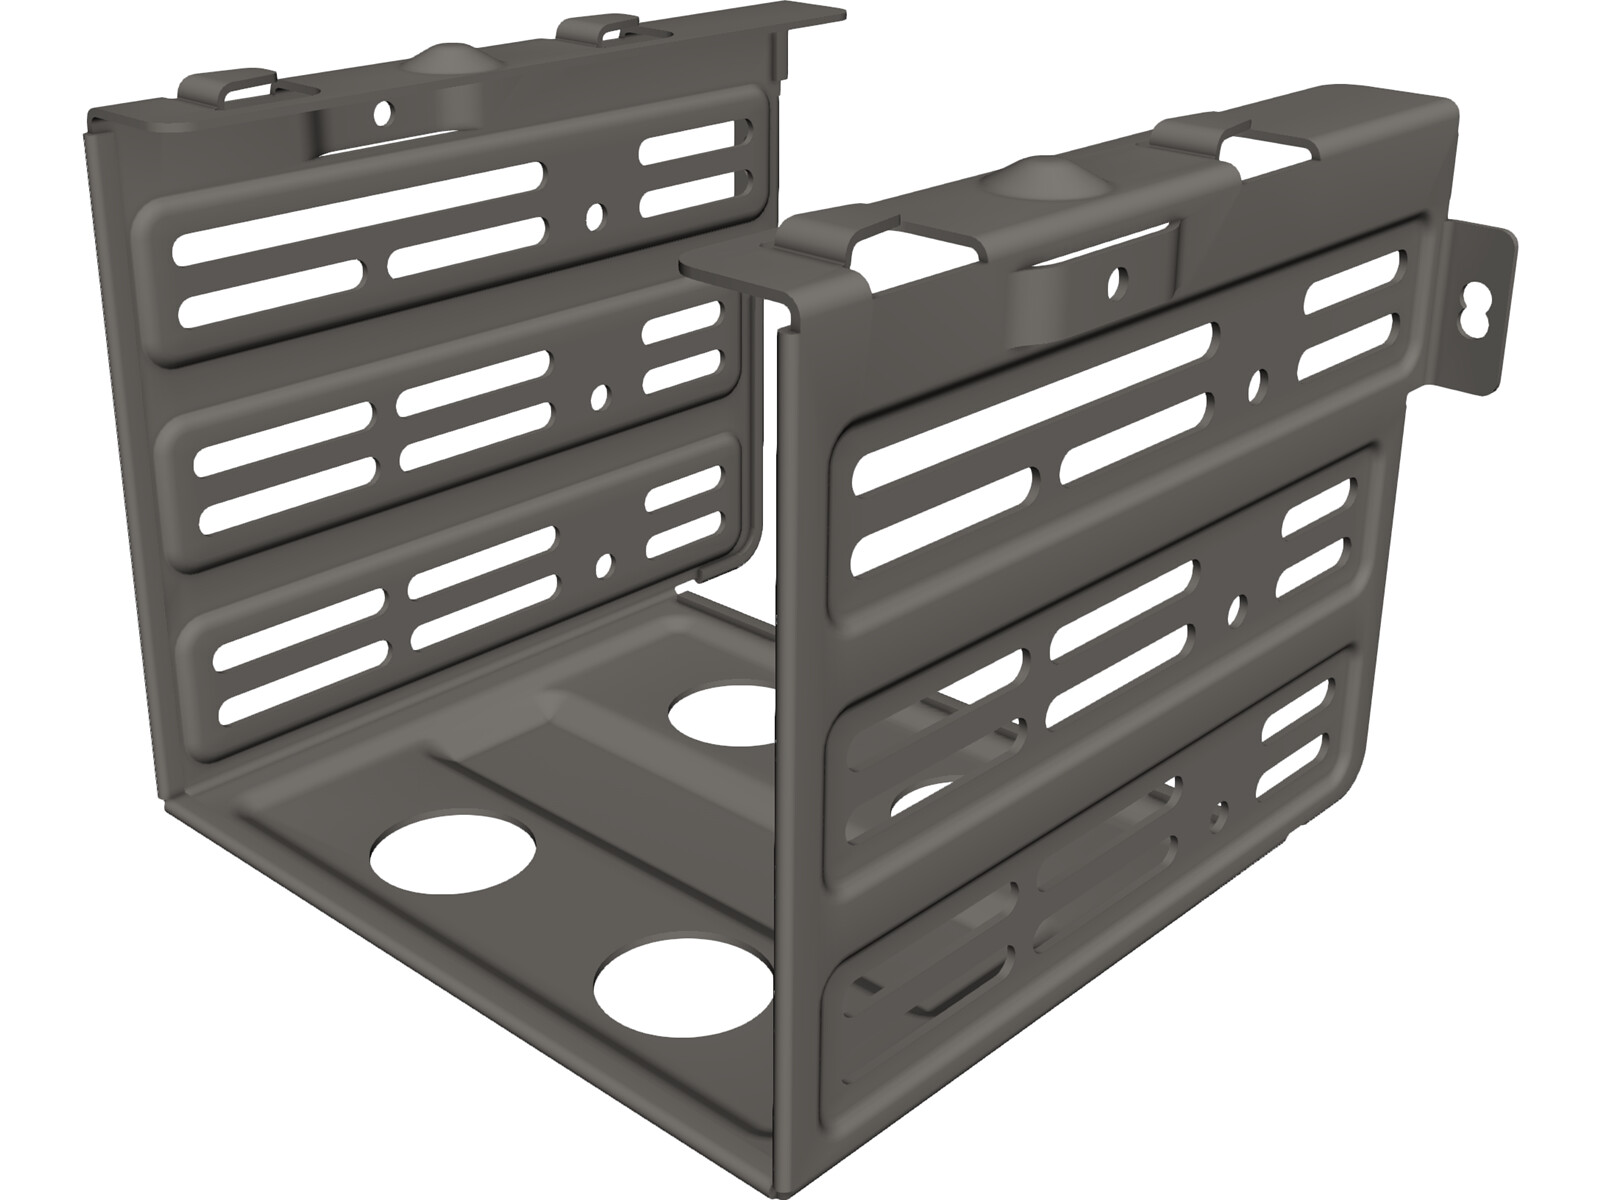 HDD Holder 3D CAD Model